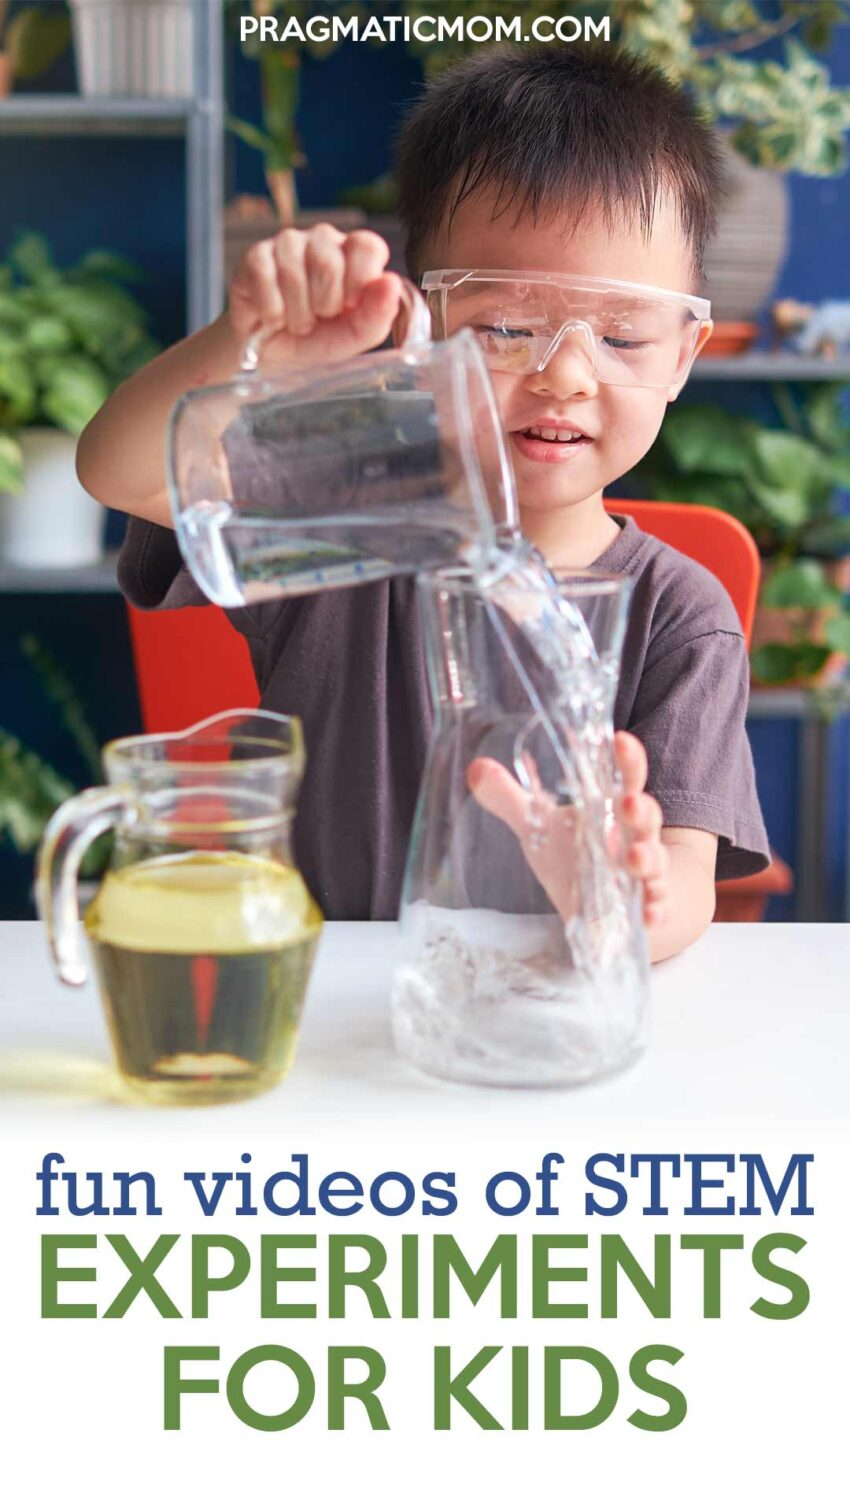 Really Fun Videos of STEM Experiments for Kids